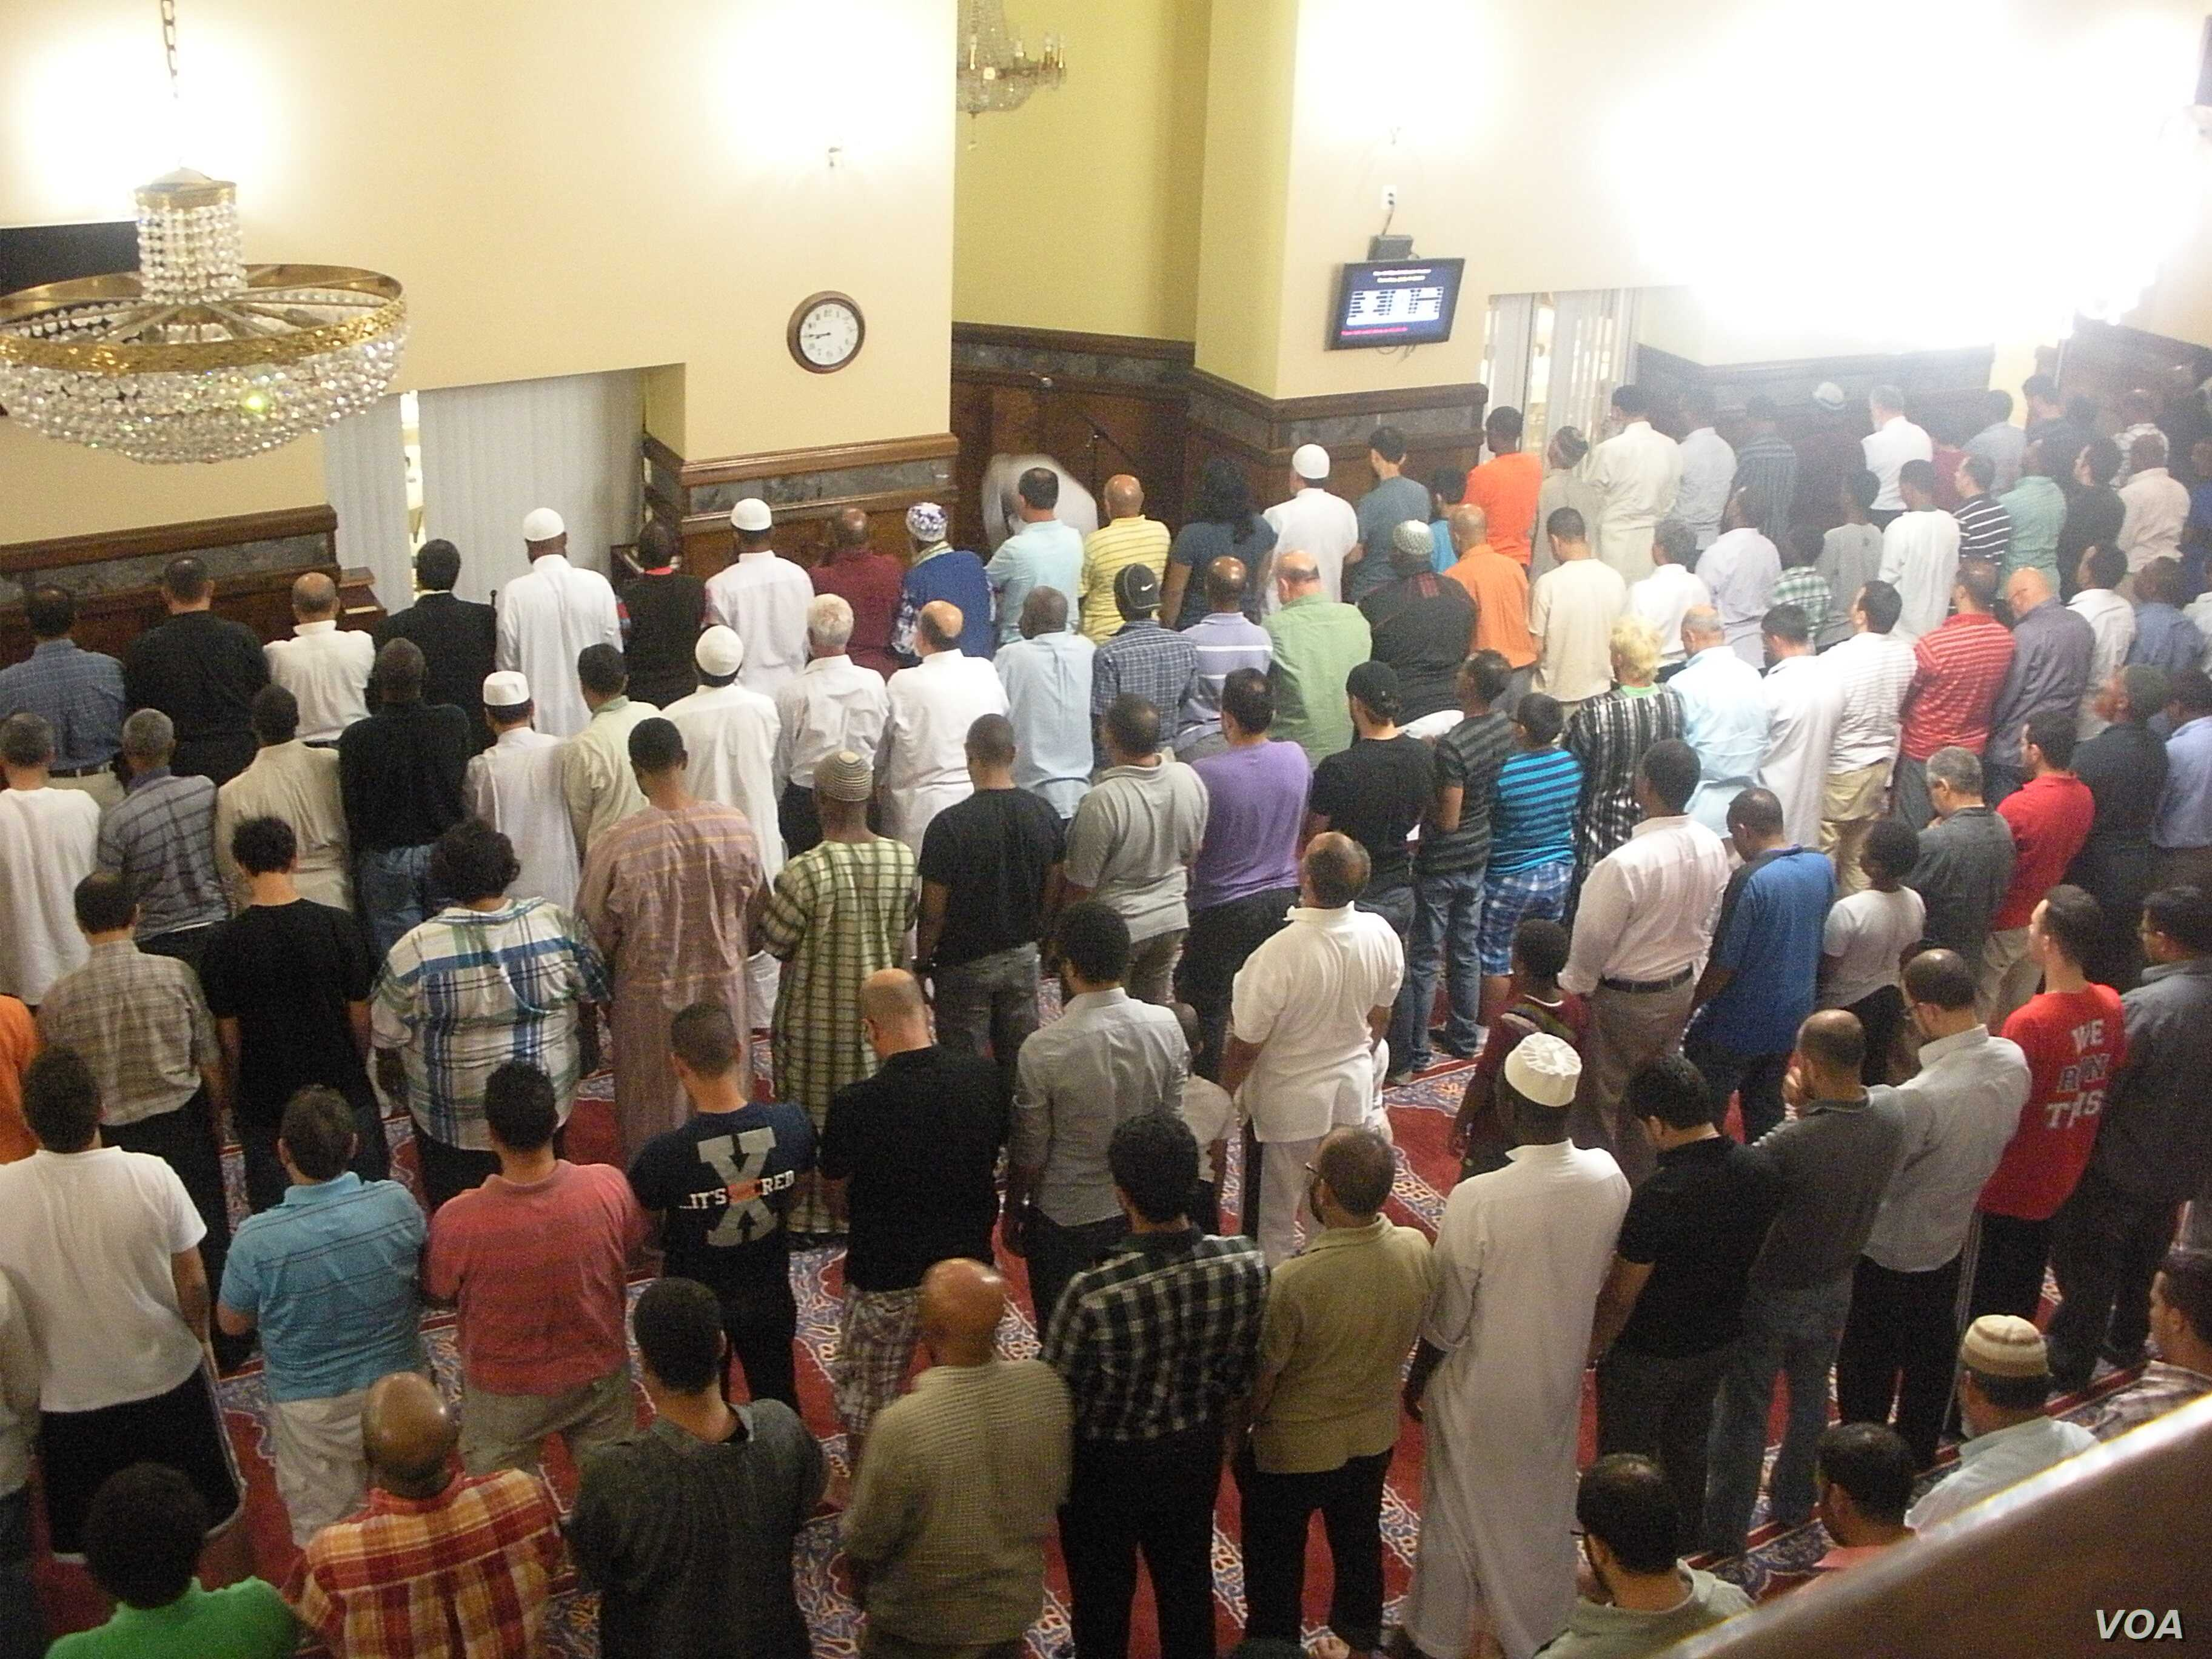 Mosques in America Work to Fight Radicalization of Youth